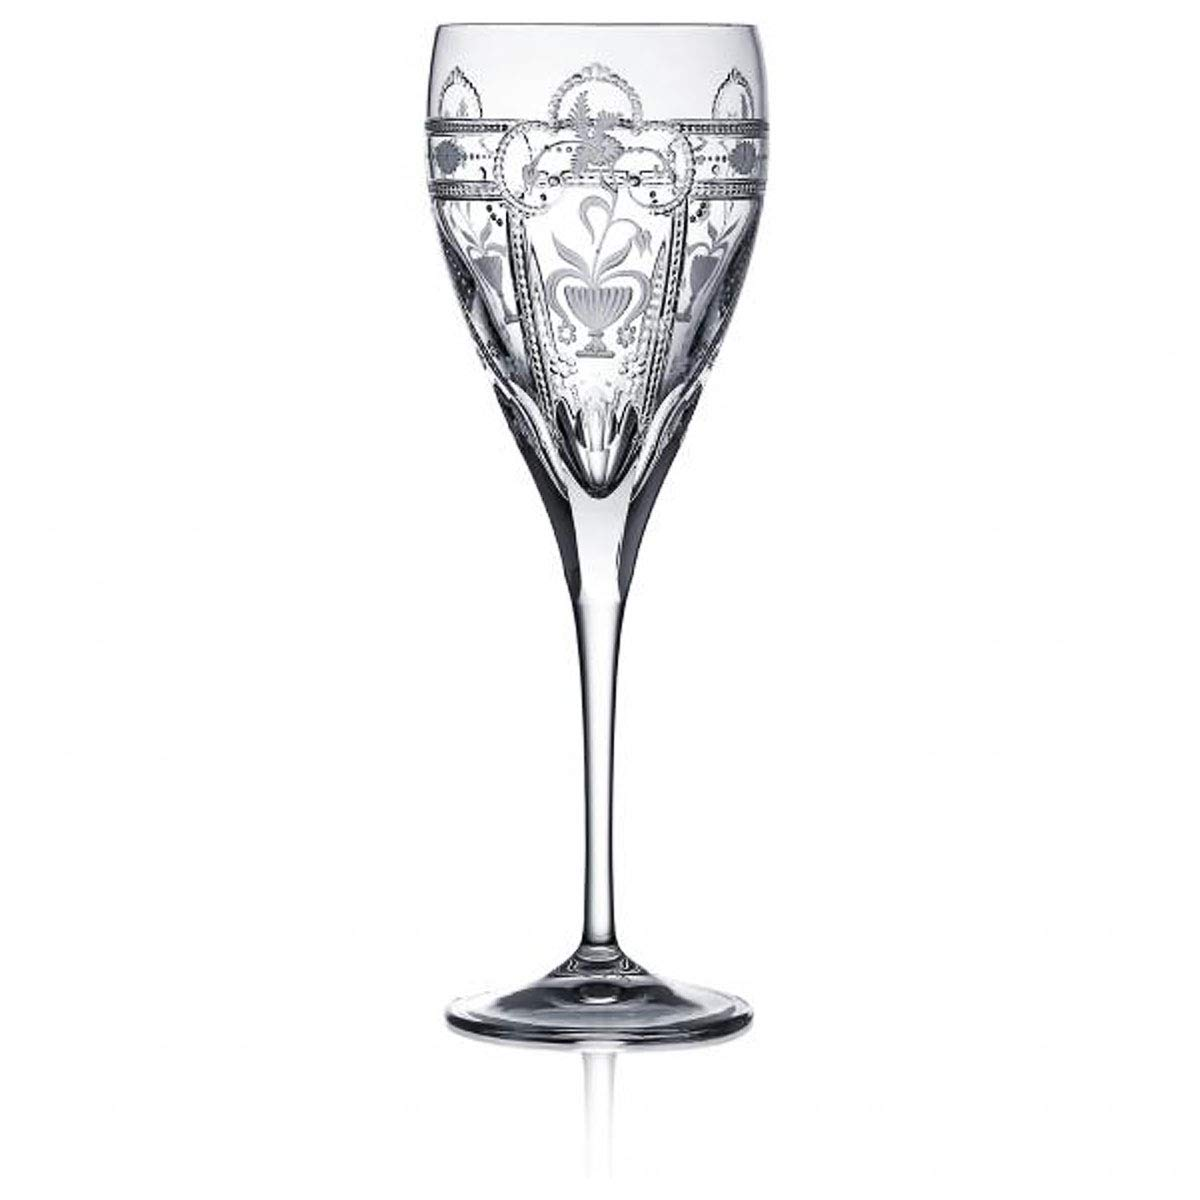 Varga Art Crystal Water Clear Glass Imperial Collection by Varga Art Crystal